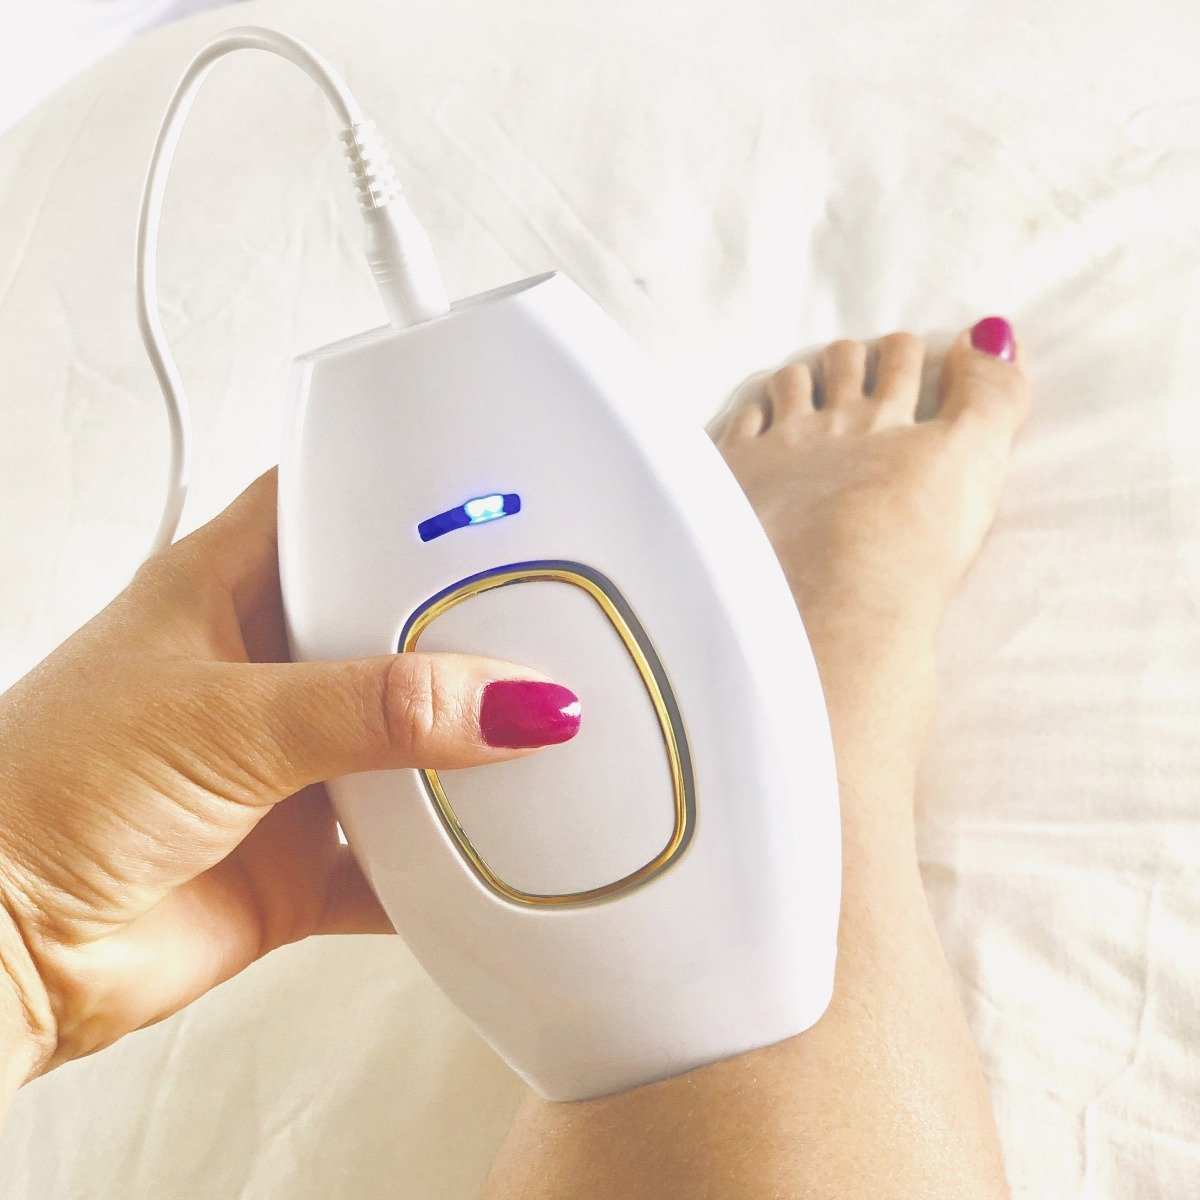 Shopedian IPL Laser Hair Removal Handset